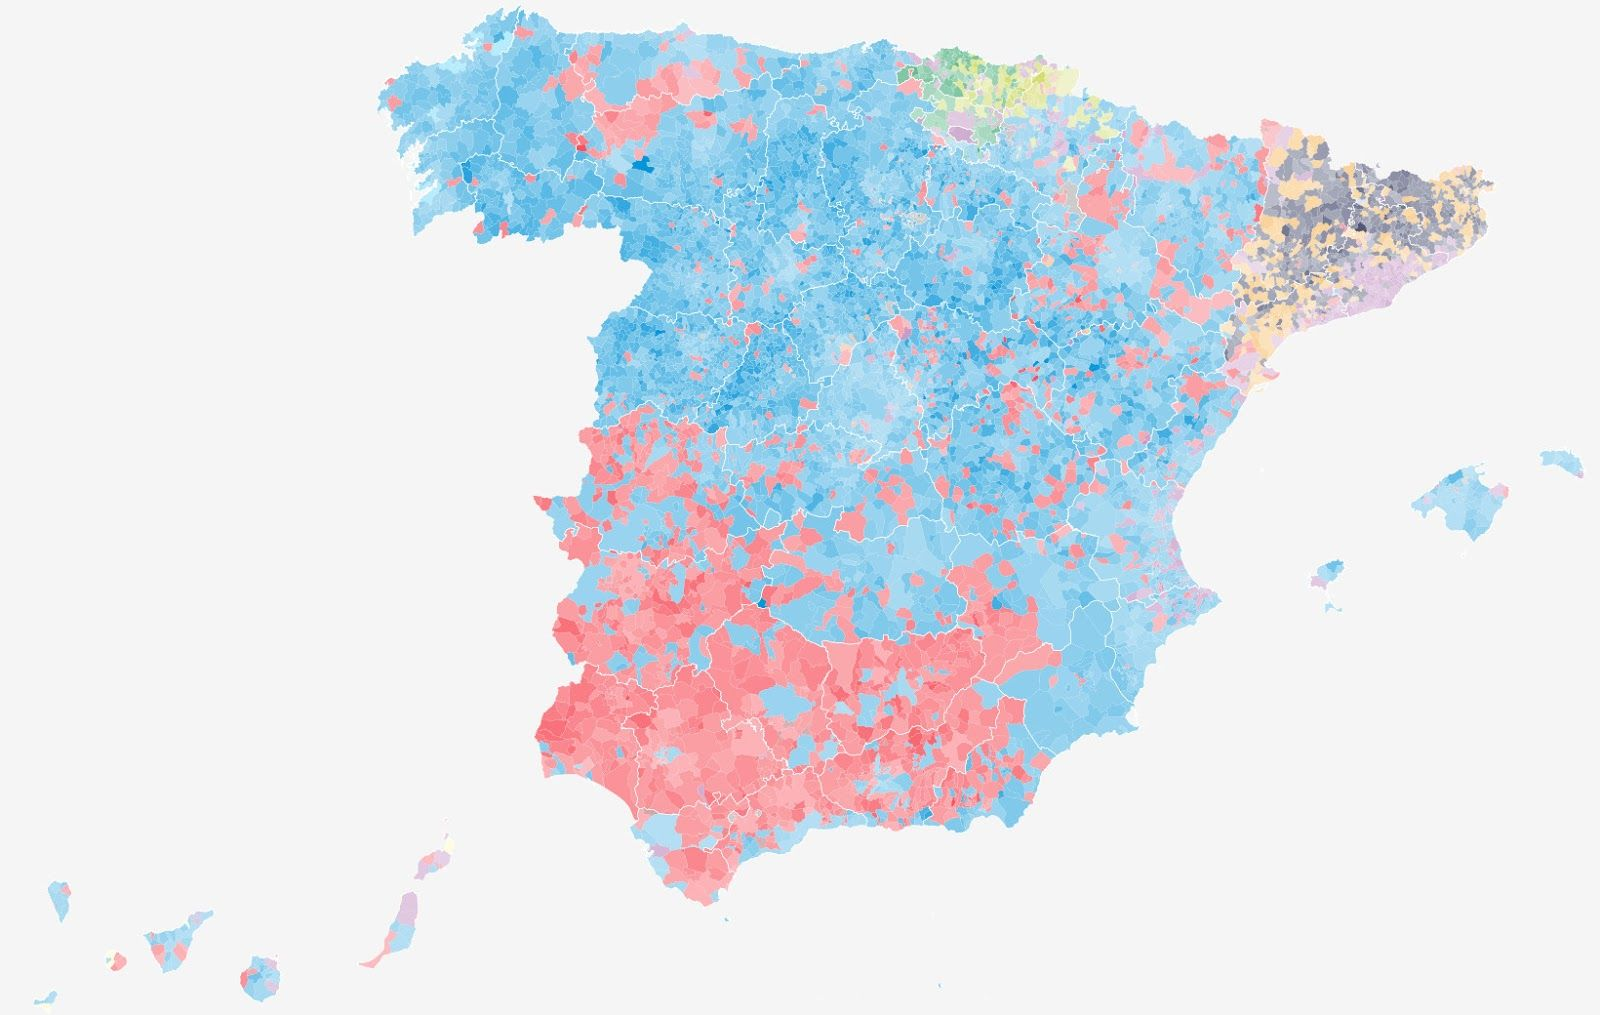 The Spanish Election Map Spain Pinterest Election Map And - Blended map of the us election